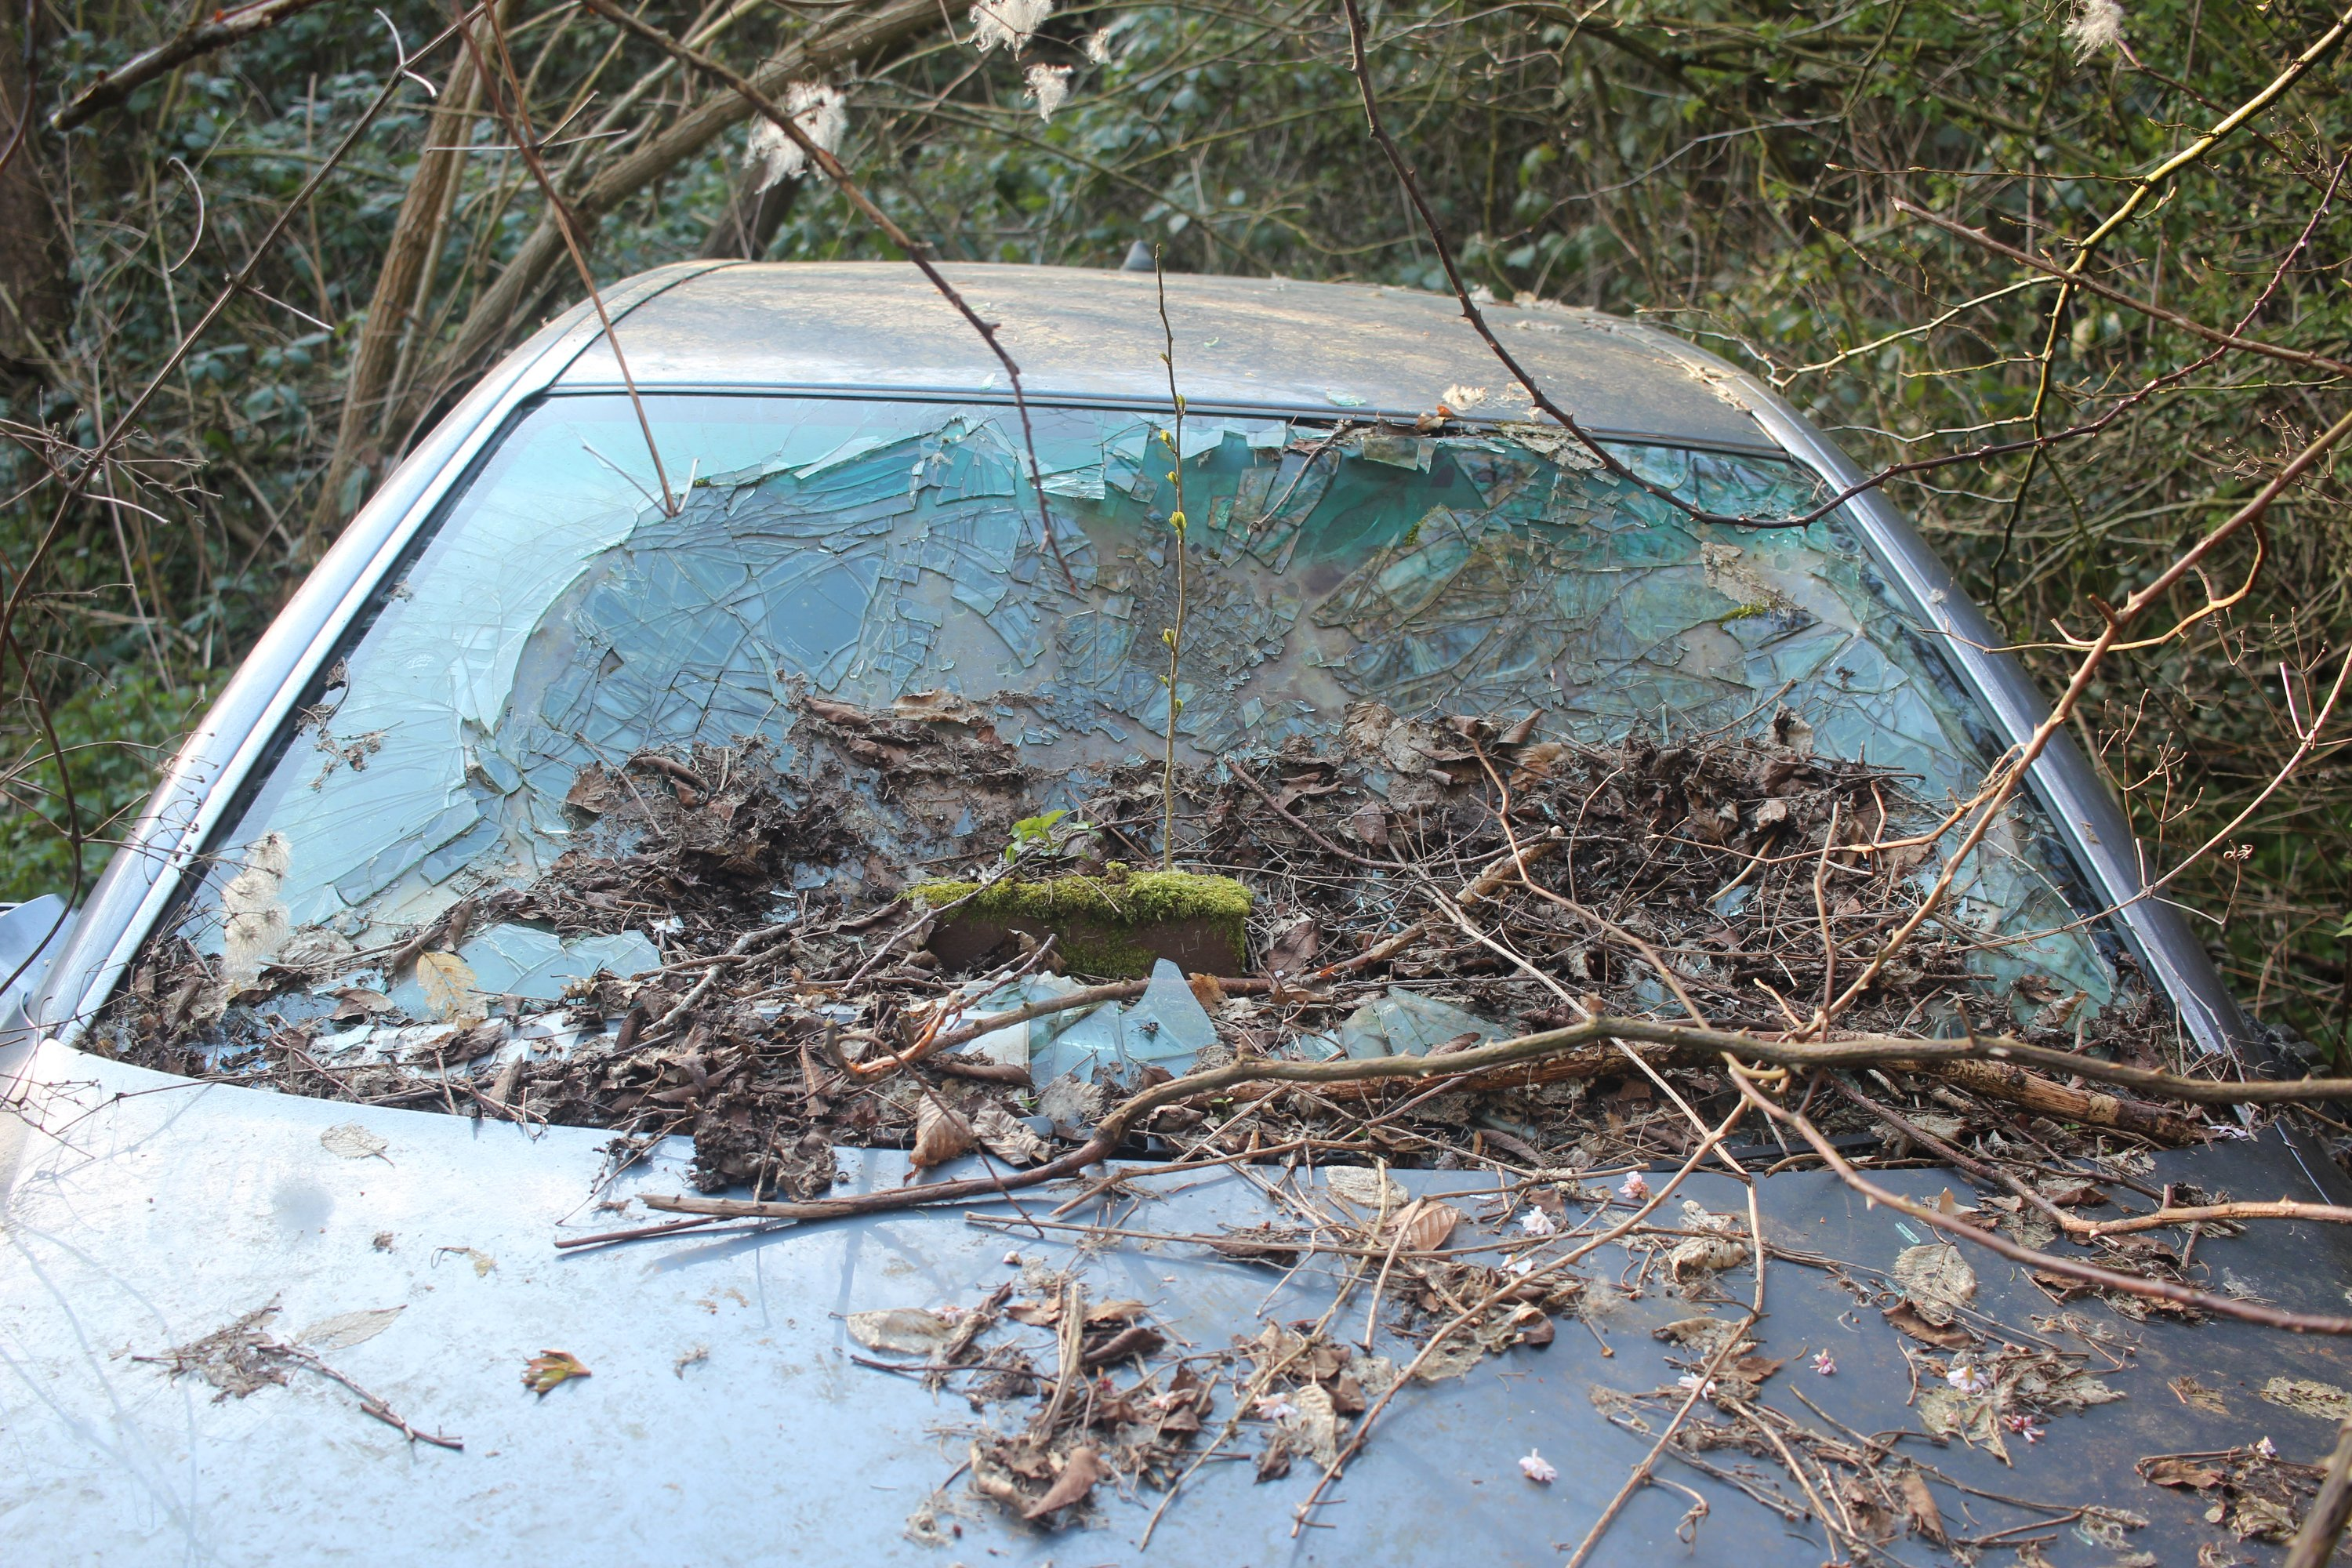 art photo greenhouse nature abandoned urbex degree photography crash car alfa romeo